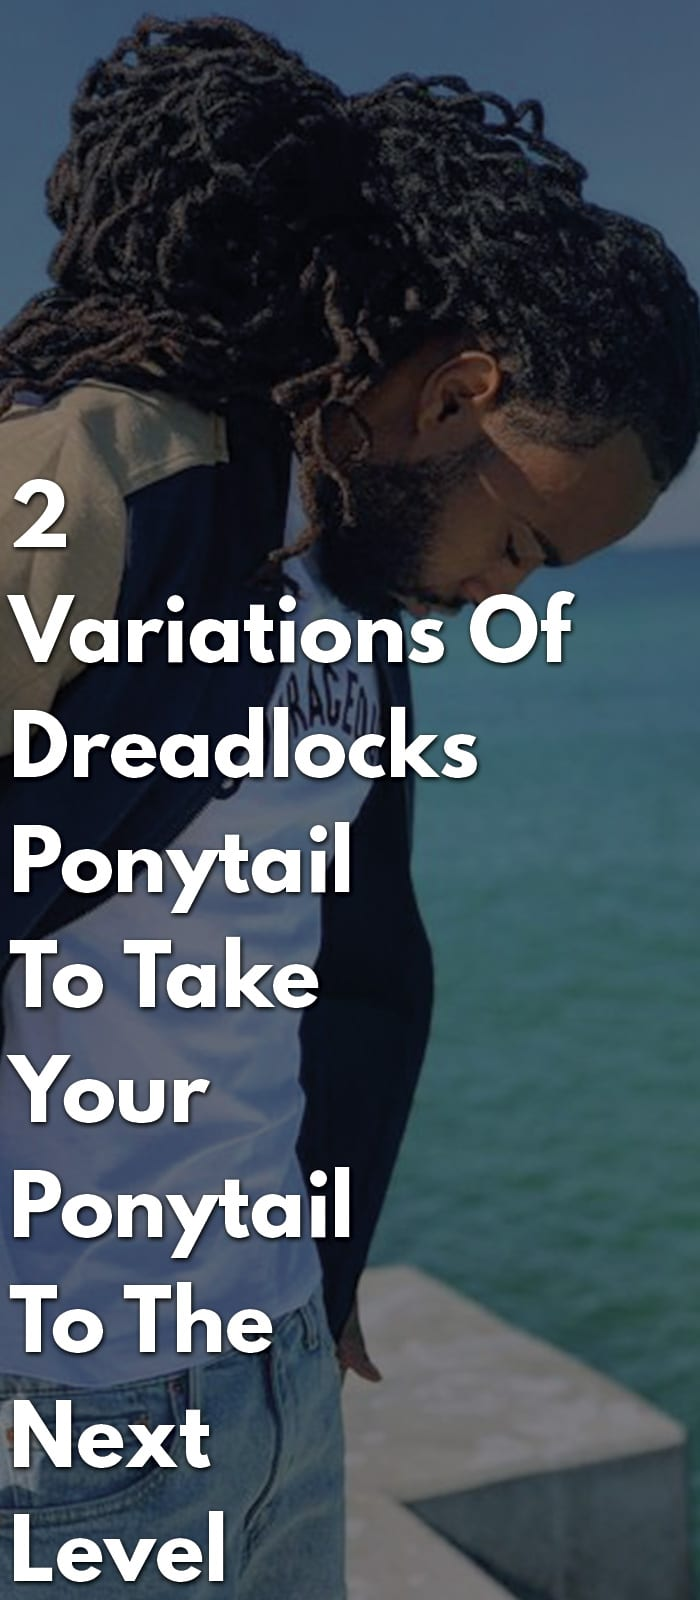 2 Variations Of Dreadlocks Ponytail To Take Your Ponytail To The Next Level